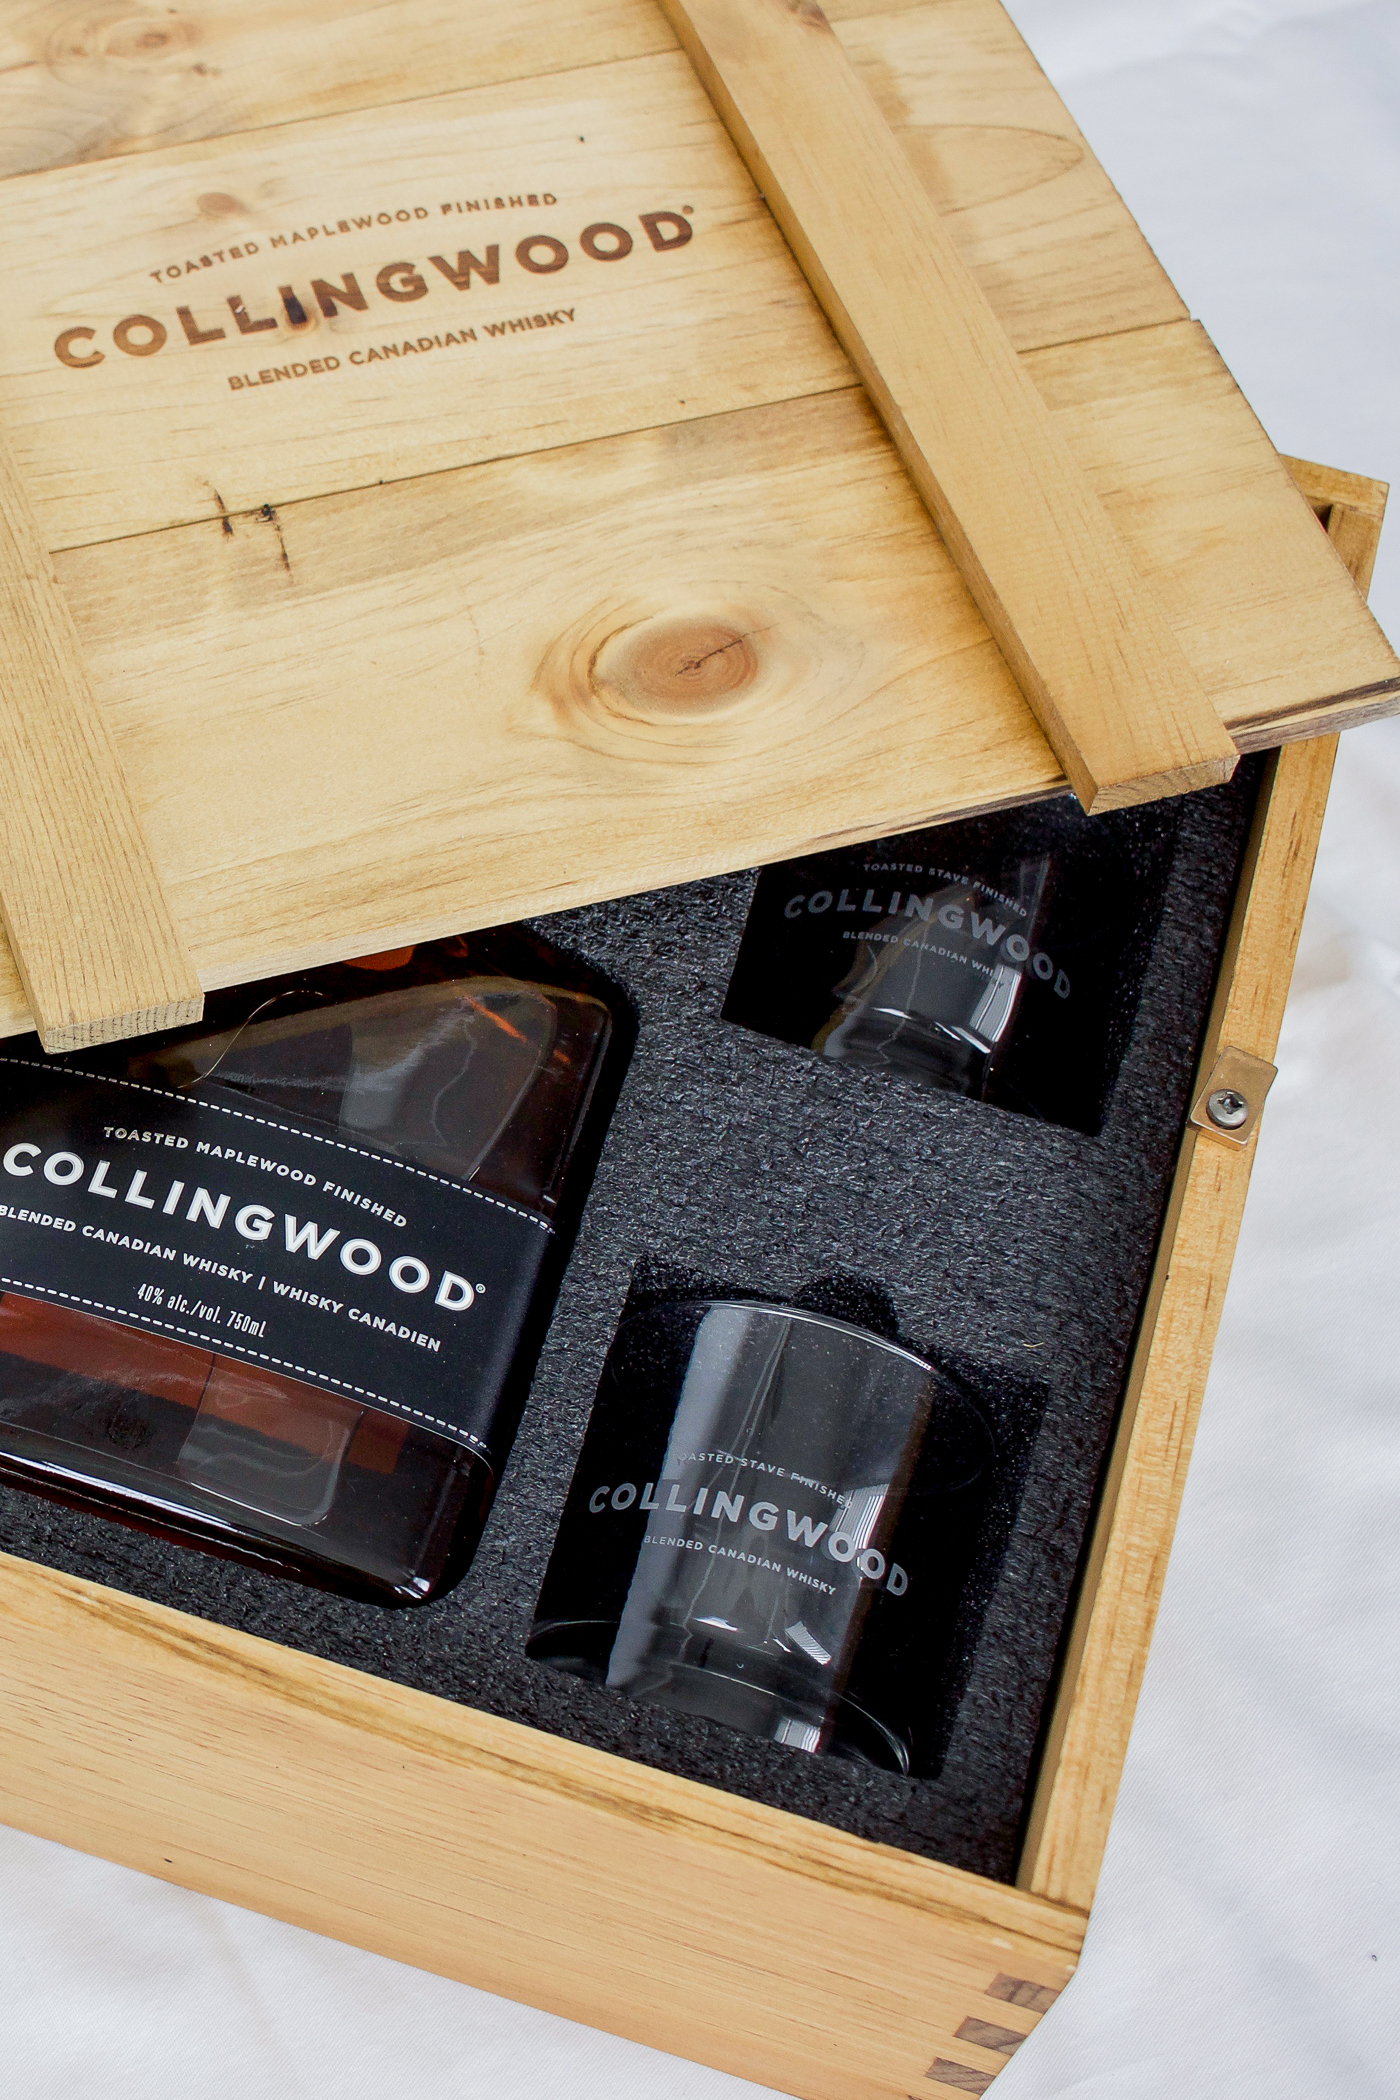 Cocktail recipe made with Collingwood Whiskey